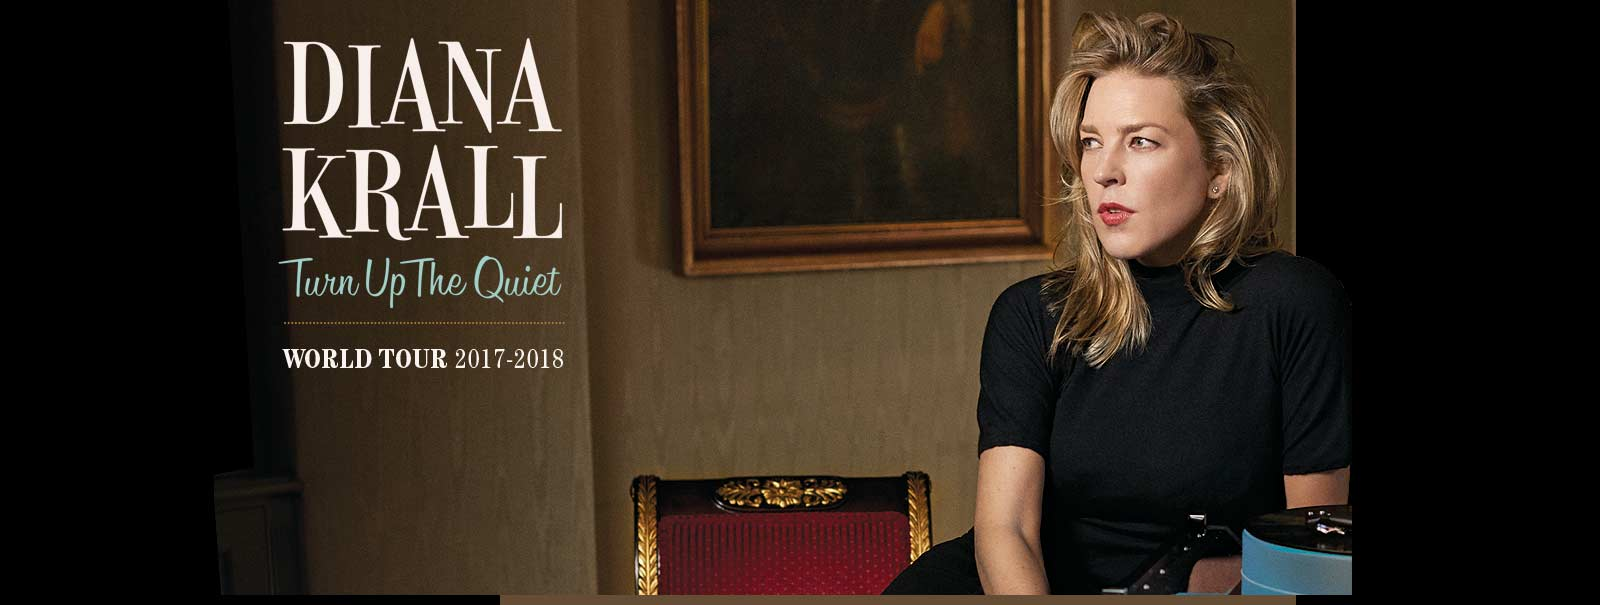 More Info - Diana Krall: Turn Up The Quiet World Tour 2017-2018